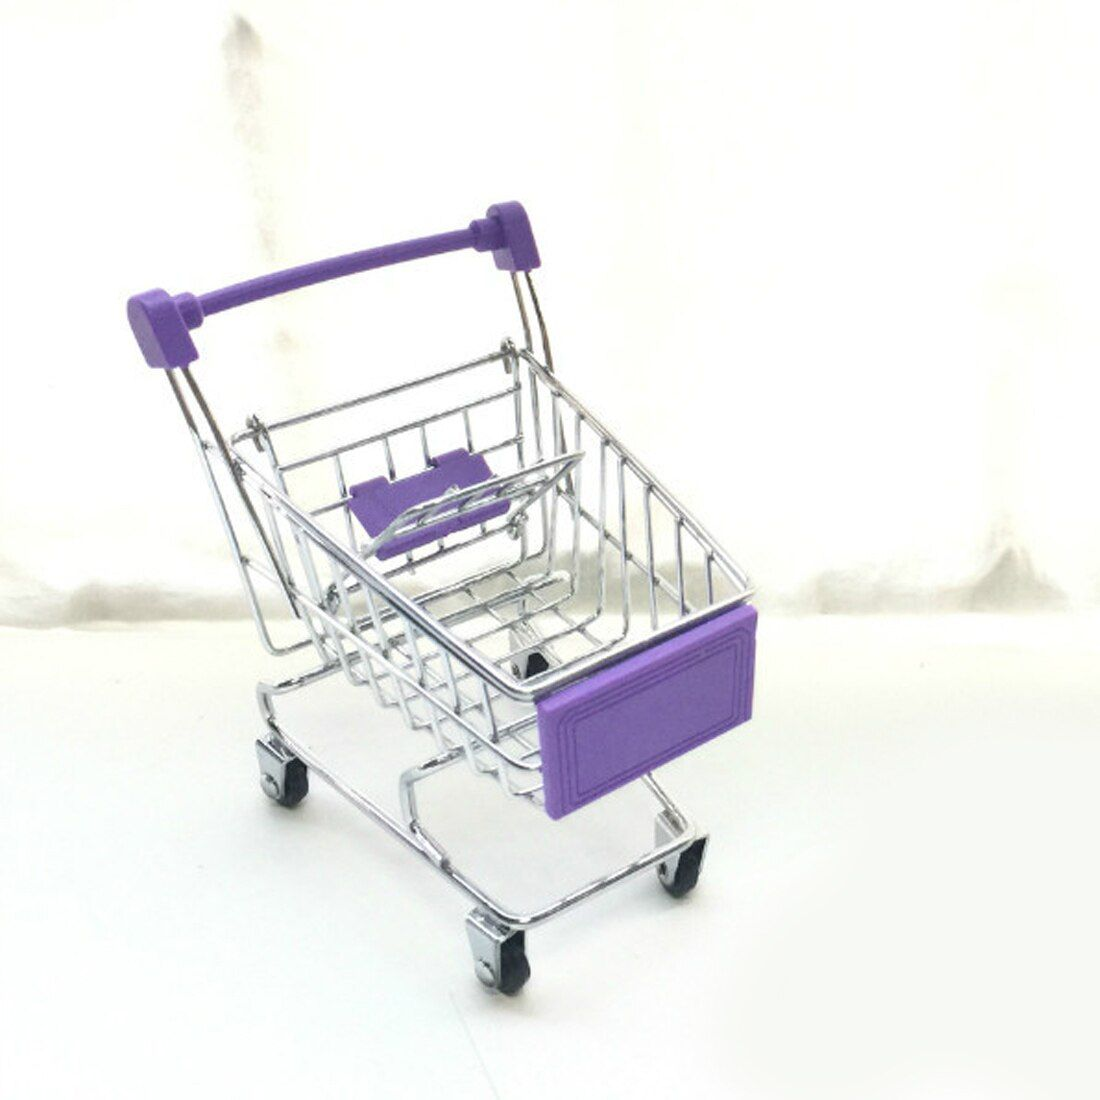 Super Mini Supermarket Handcart Trolley Shopping Utility Cart Phone Holder Office Desk Storage Toy Cart Baby Toy